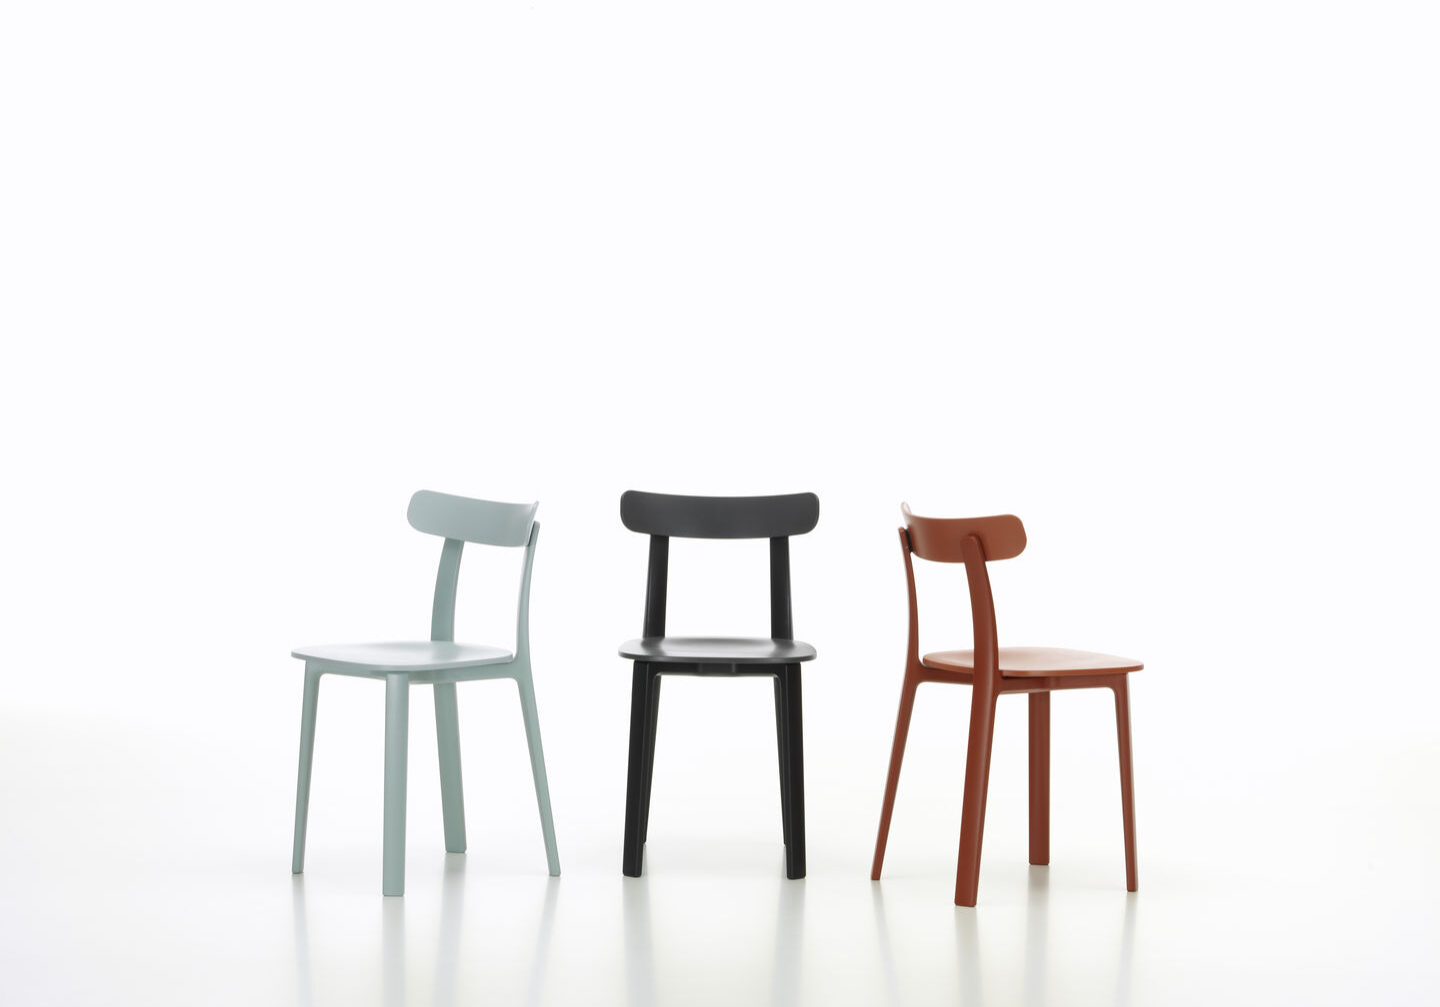 1299270_All Plastic Chair Group_v_fullbleed_1440x